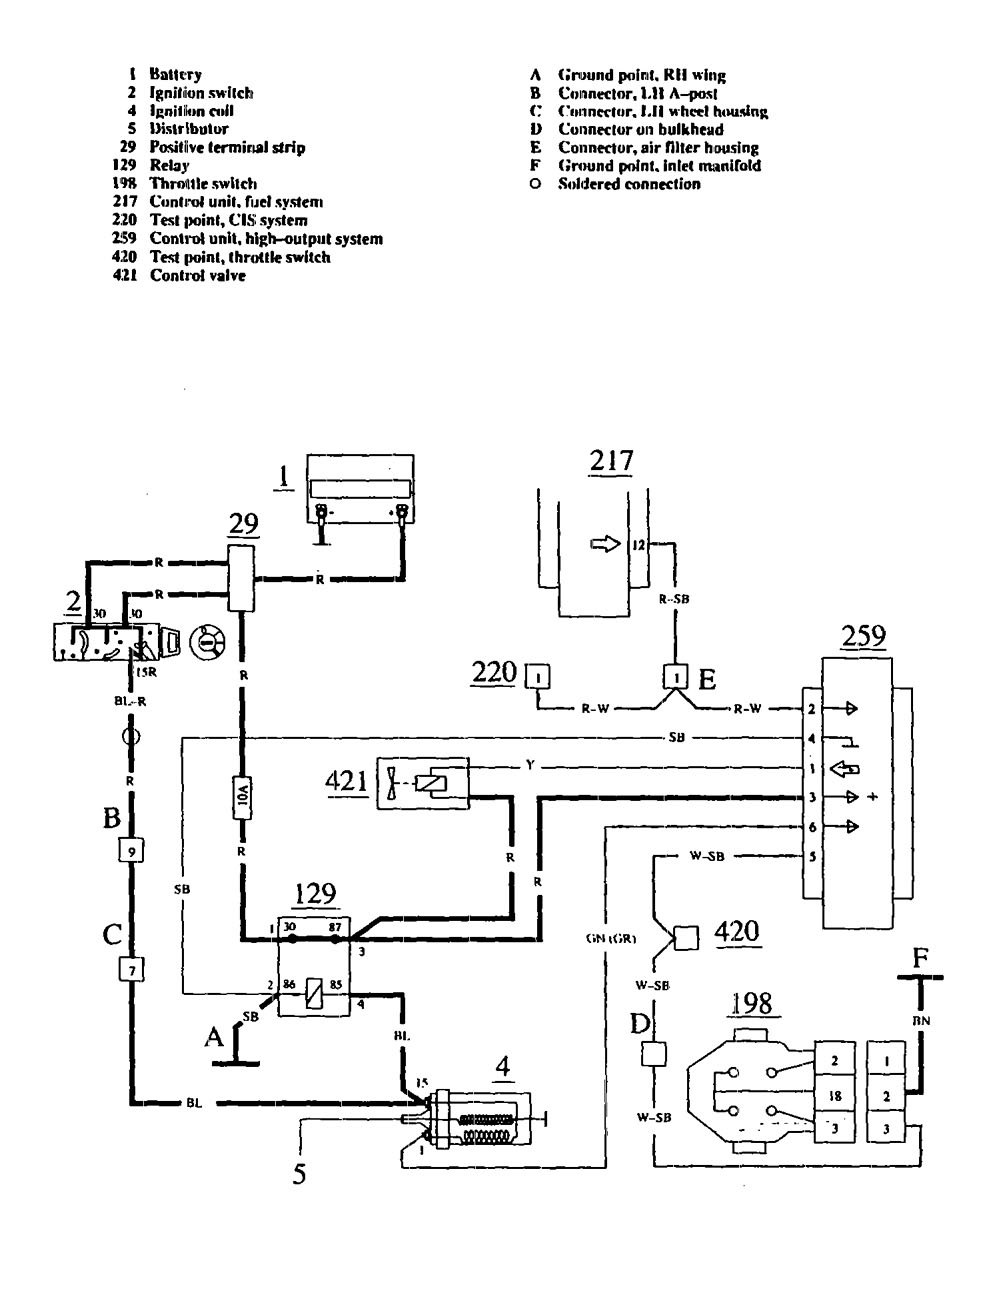 1981 Buick Regal Wiring Diagram 2001 buick lesabre radio ... on buick regal coolant leak, buick regal fuel pump, buick regal brakes, buick reatta wiring diagram, buick regal water pump, buick regal lighting, buick enclave wiring diagram, buick stereo wiring diagram, buick regal power, buick rainier wiring diagram, buick regal radiator, buick regal radio, buick regal door panel removal, buick lacrosse wiring diagram, buick regal dash lights, buick regal spark plugs, buick regal firing order, buick regal engine diagram, buick century electrical diagrams, buick regal exhaust system,